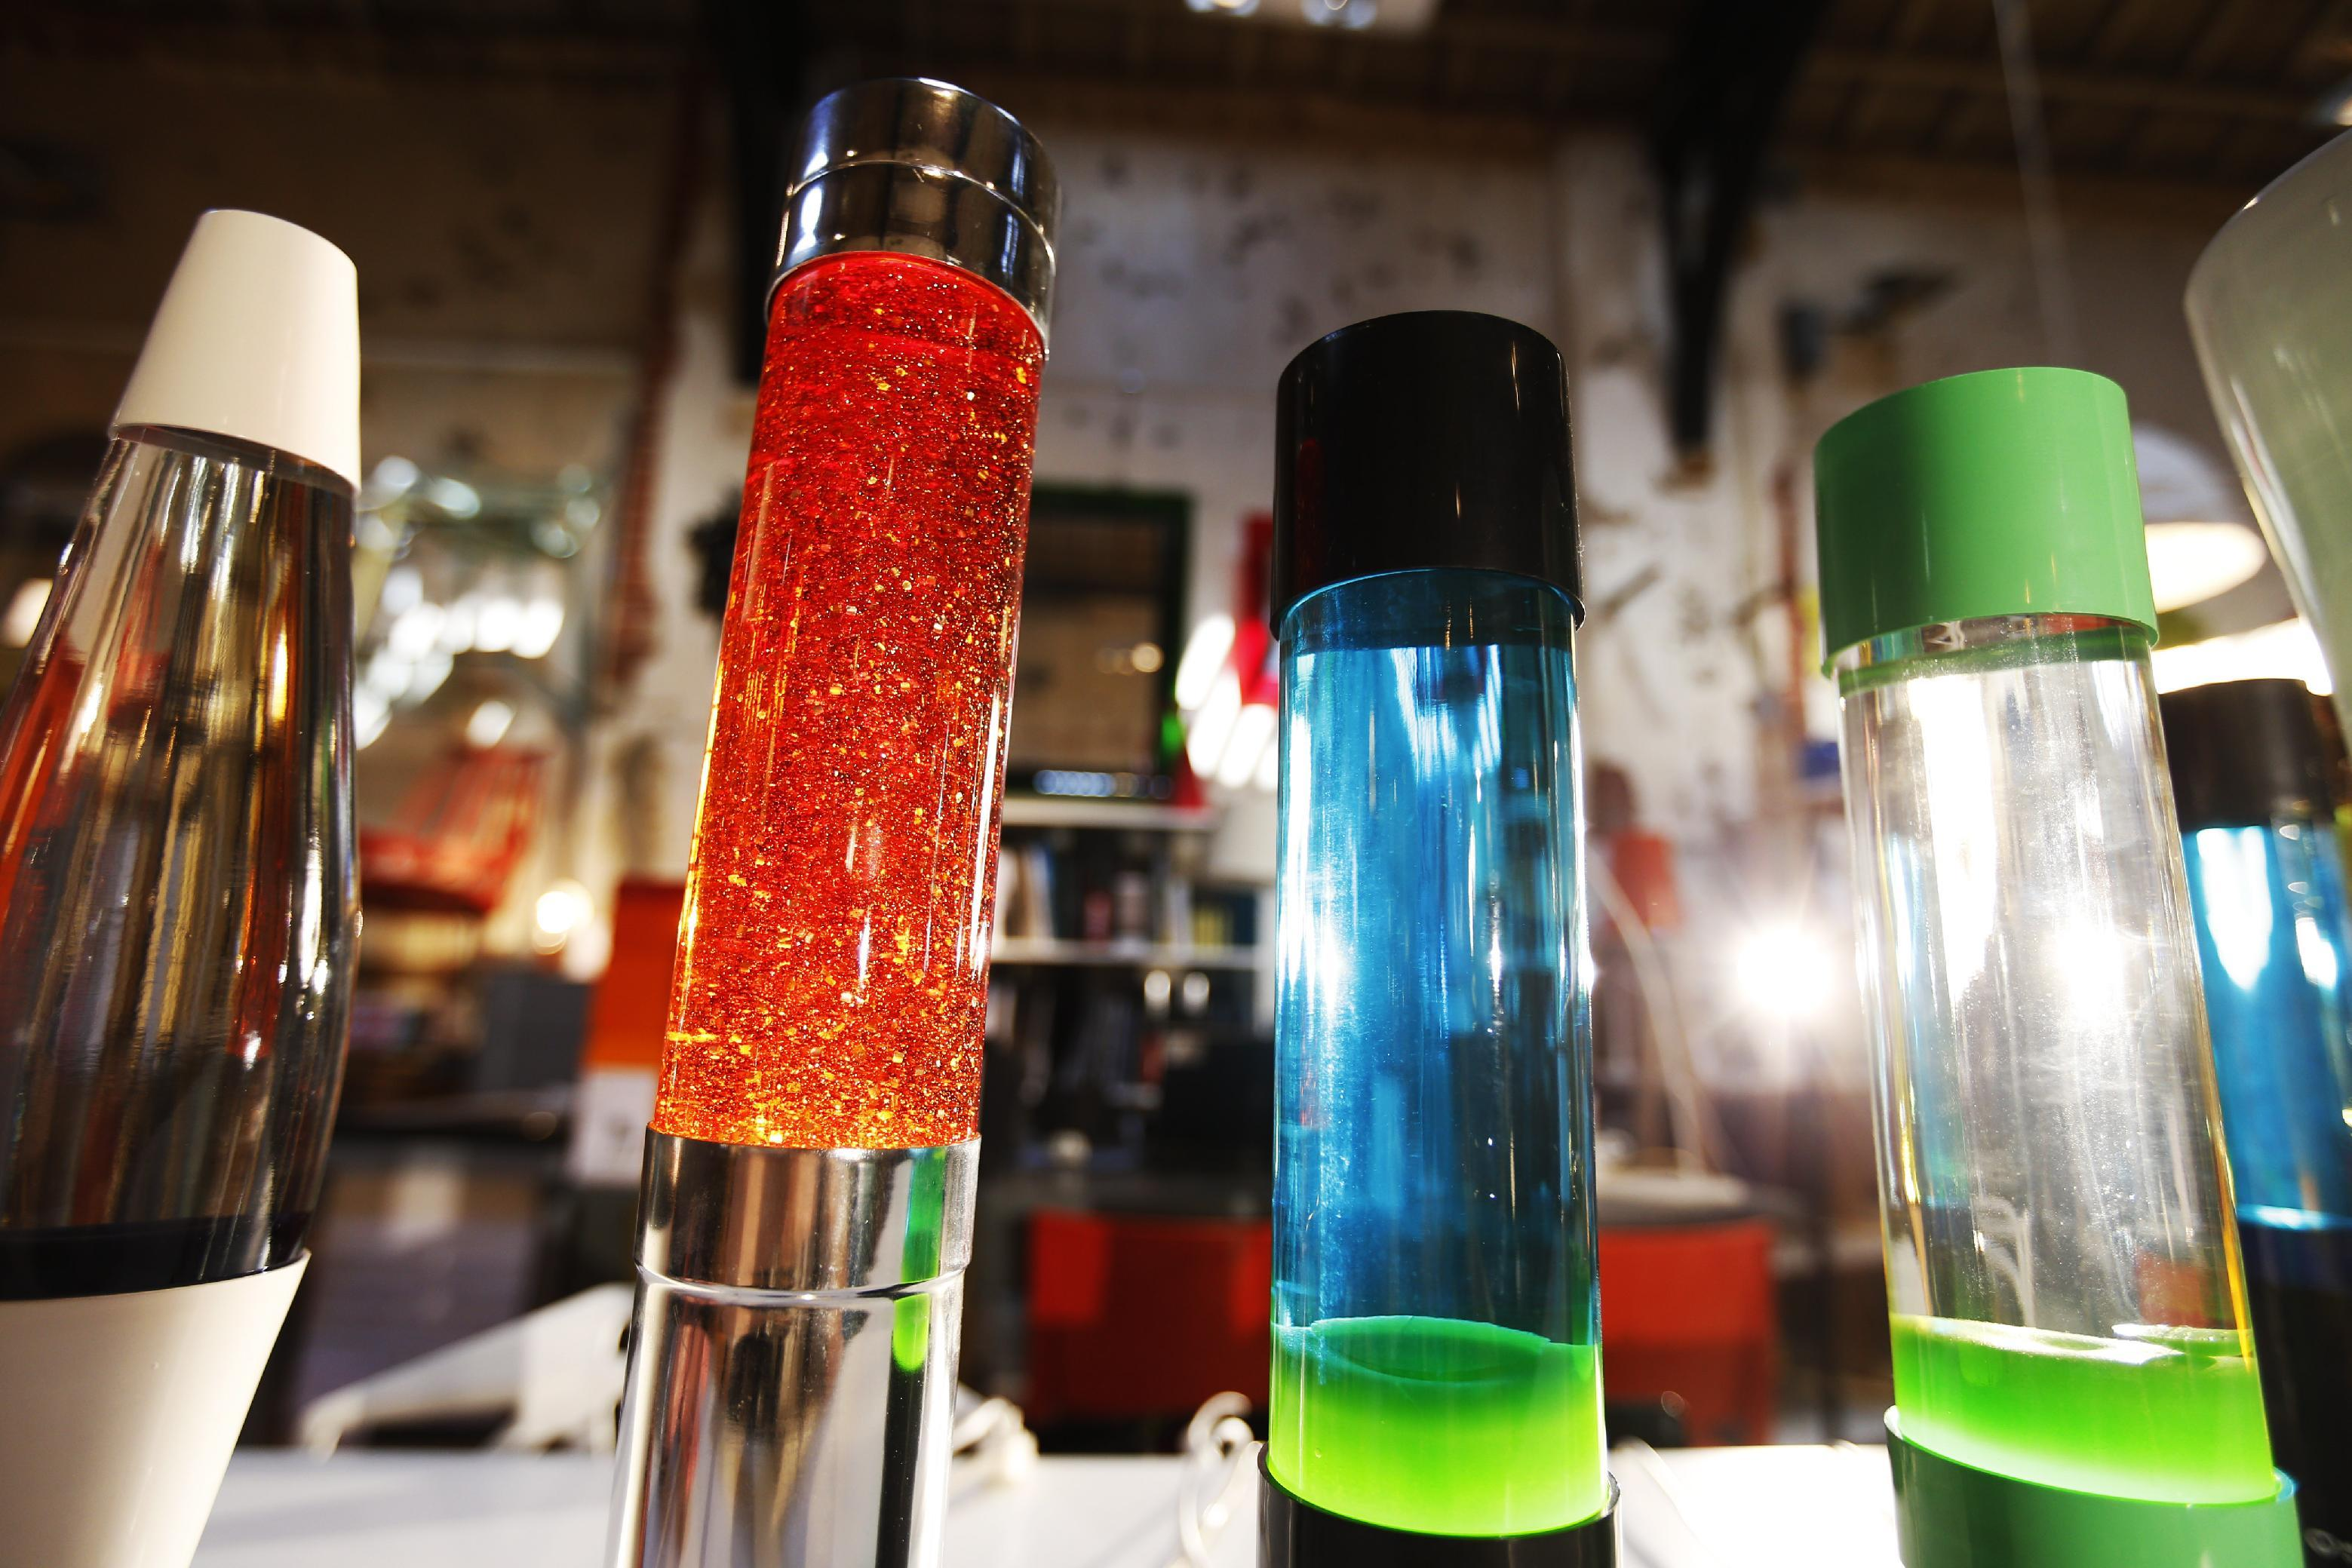 In this Monday, Aug. 19, 2013, lava lamps are photographed in a shop in London. The lava lamp, an iconic piece of British design and social trends, is celebrating its fiftieth birthday. Since its launch in 1963, Mathmos lava lamps have been in continuous production at their factory in Poole, Dorset. The company founder and eccentric inventor Edward Craven-Walker originally developed the lava lamp from an egg timer design he saw in a Dorset pub. (AP Photo/Lefteris Pitarakis)